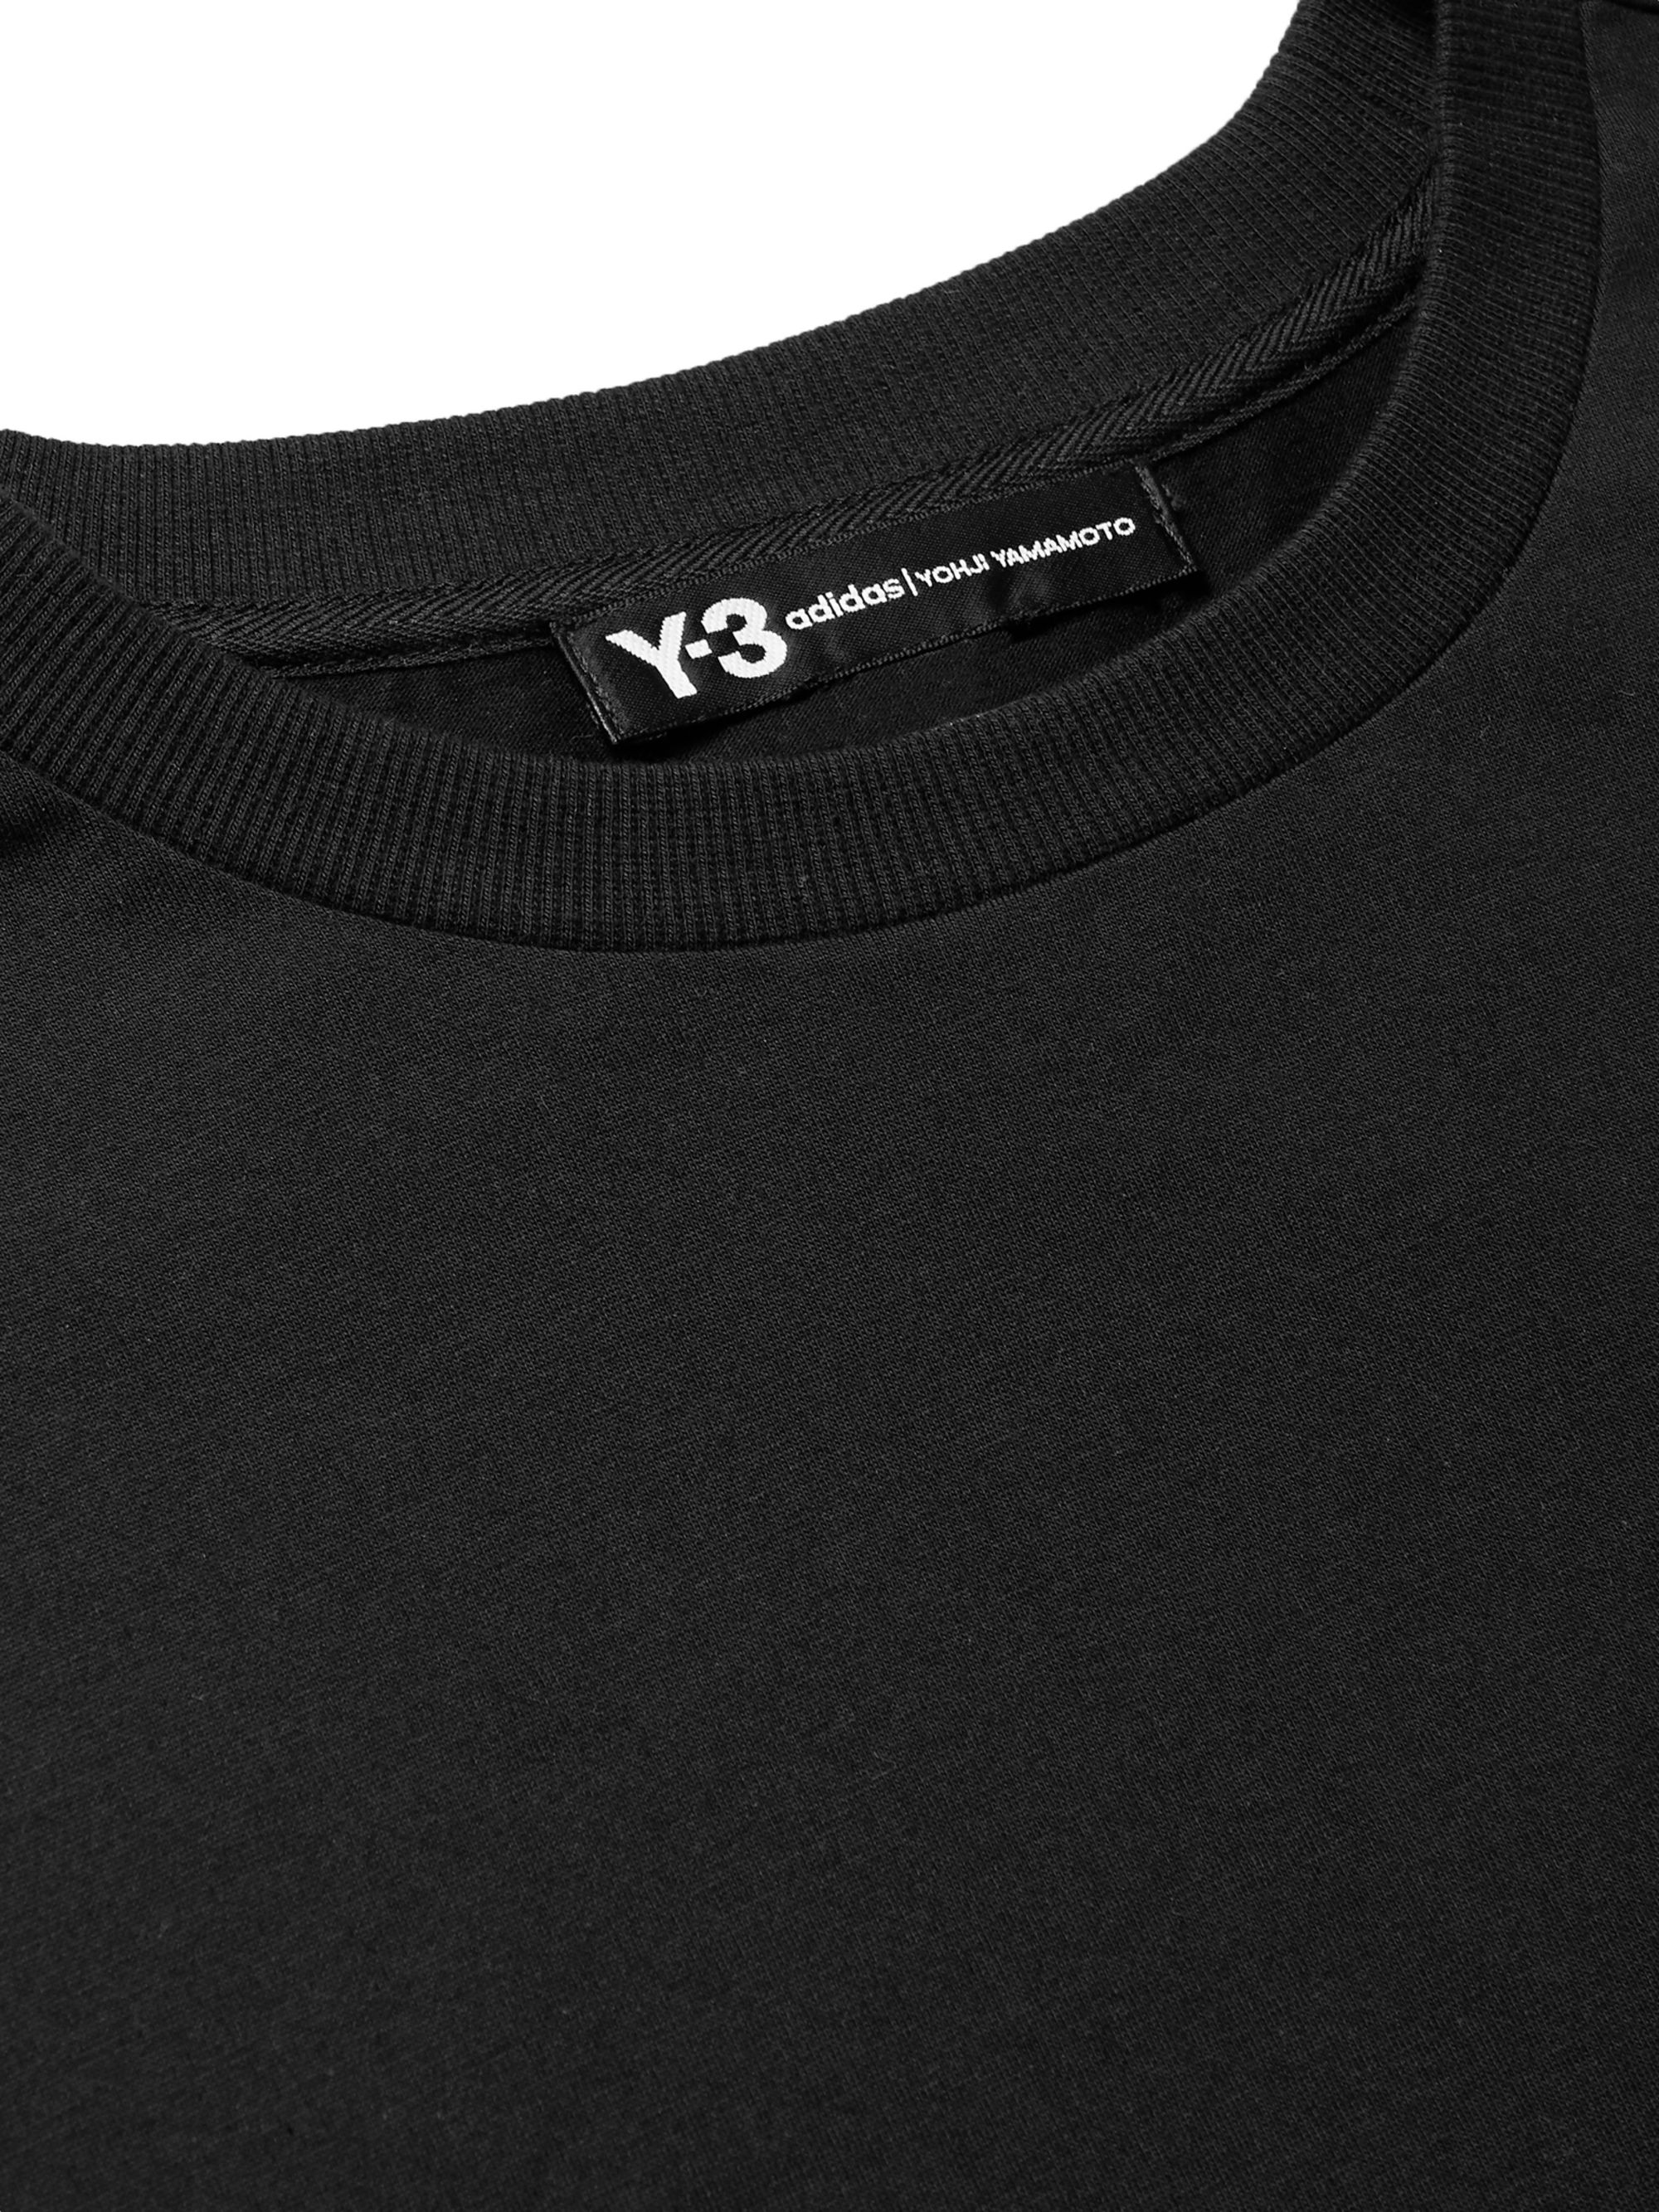 Y-3 Embroidered Printed Cotton-Jersey T-Shirt